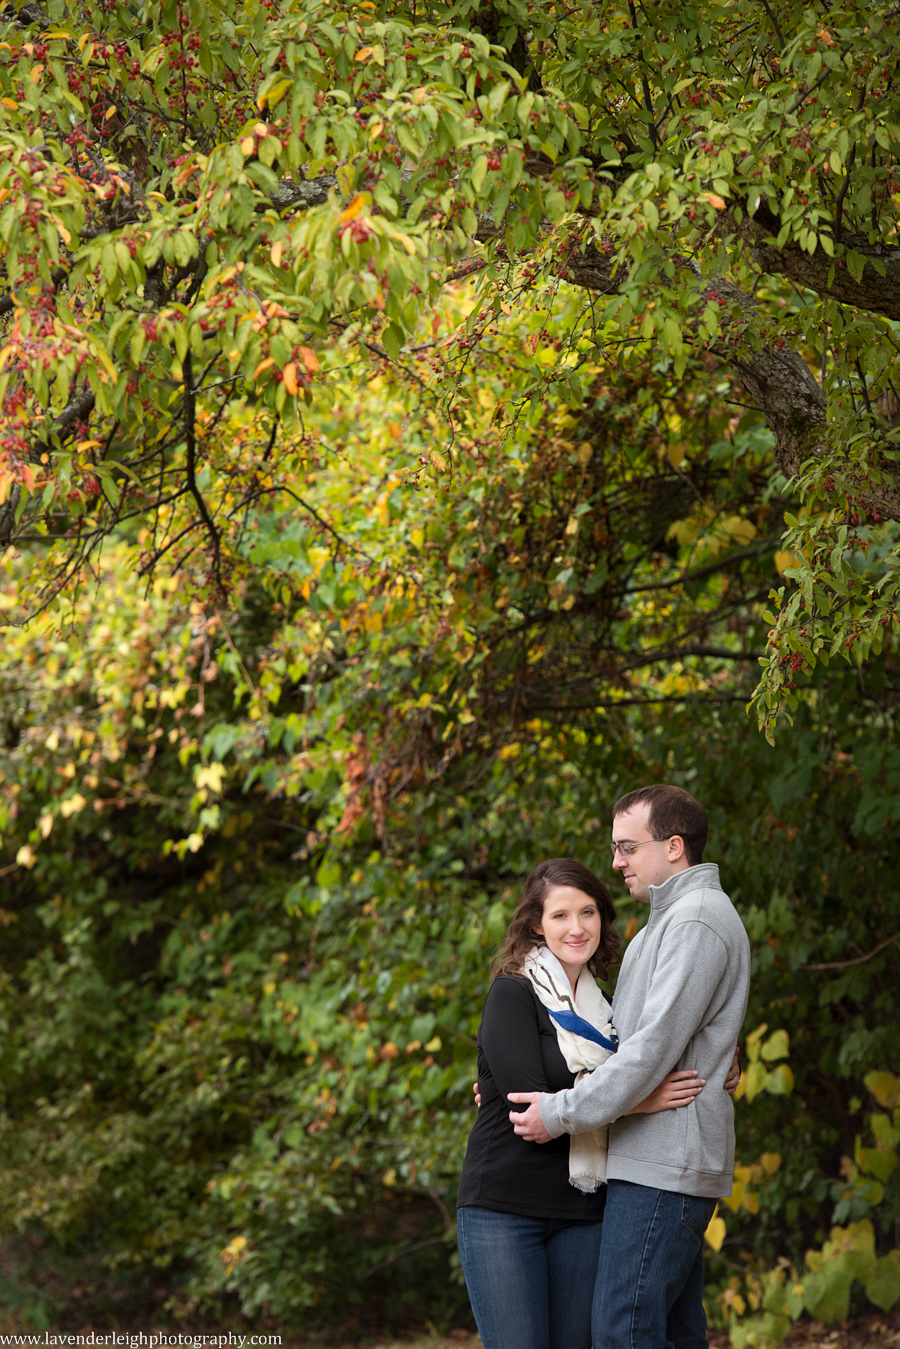 Mellon Park Engagement Photographer | Pittsburgh Wedding Photographers | Lavender Leigh Photography | Blog